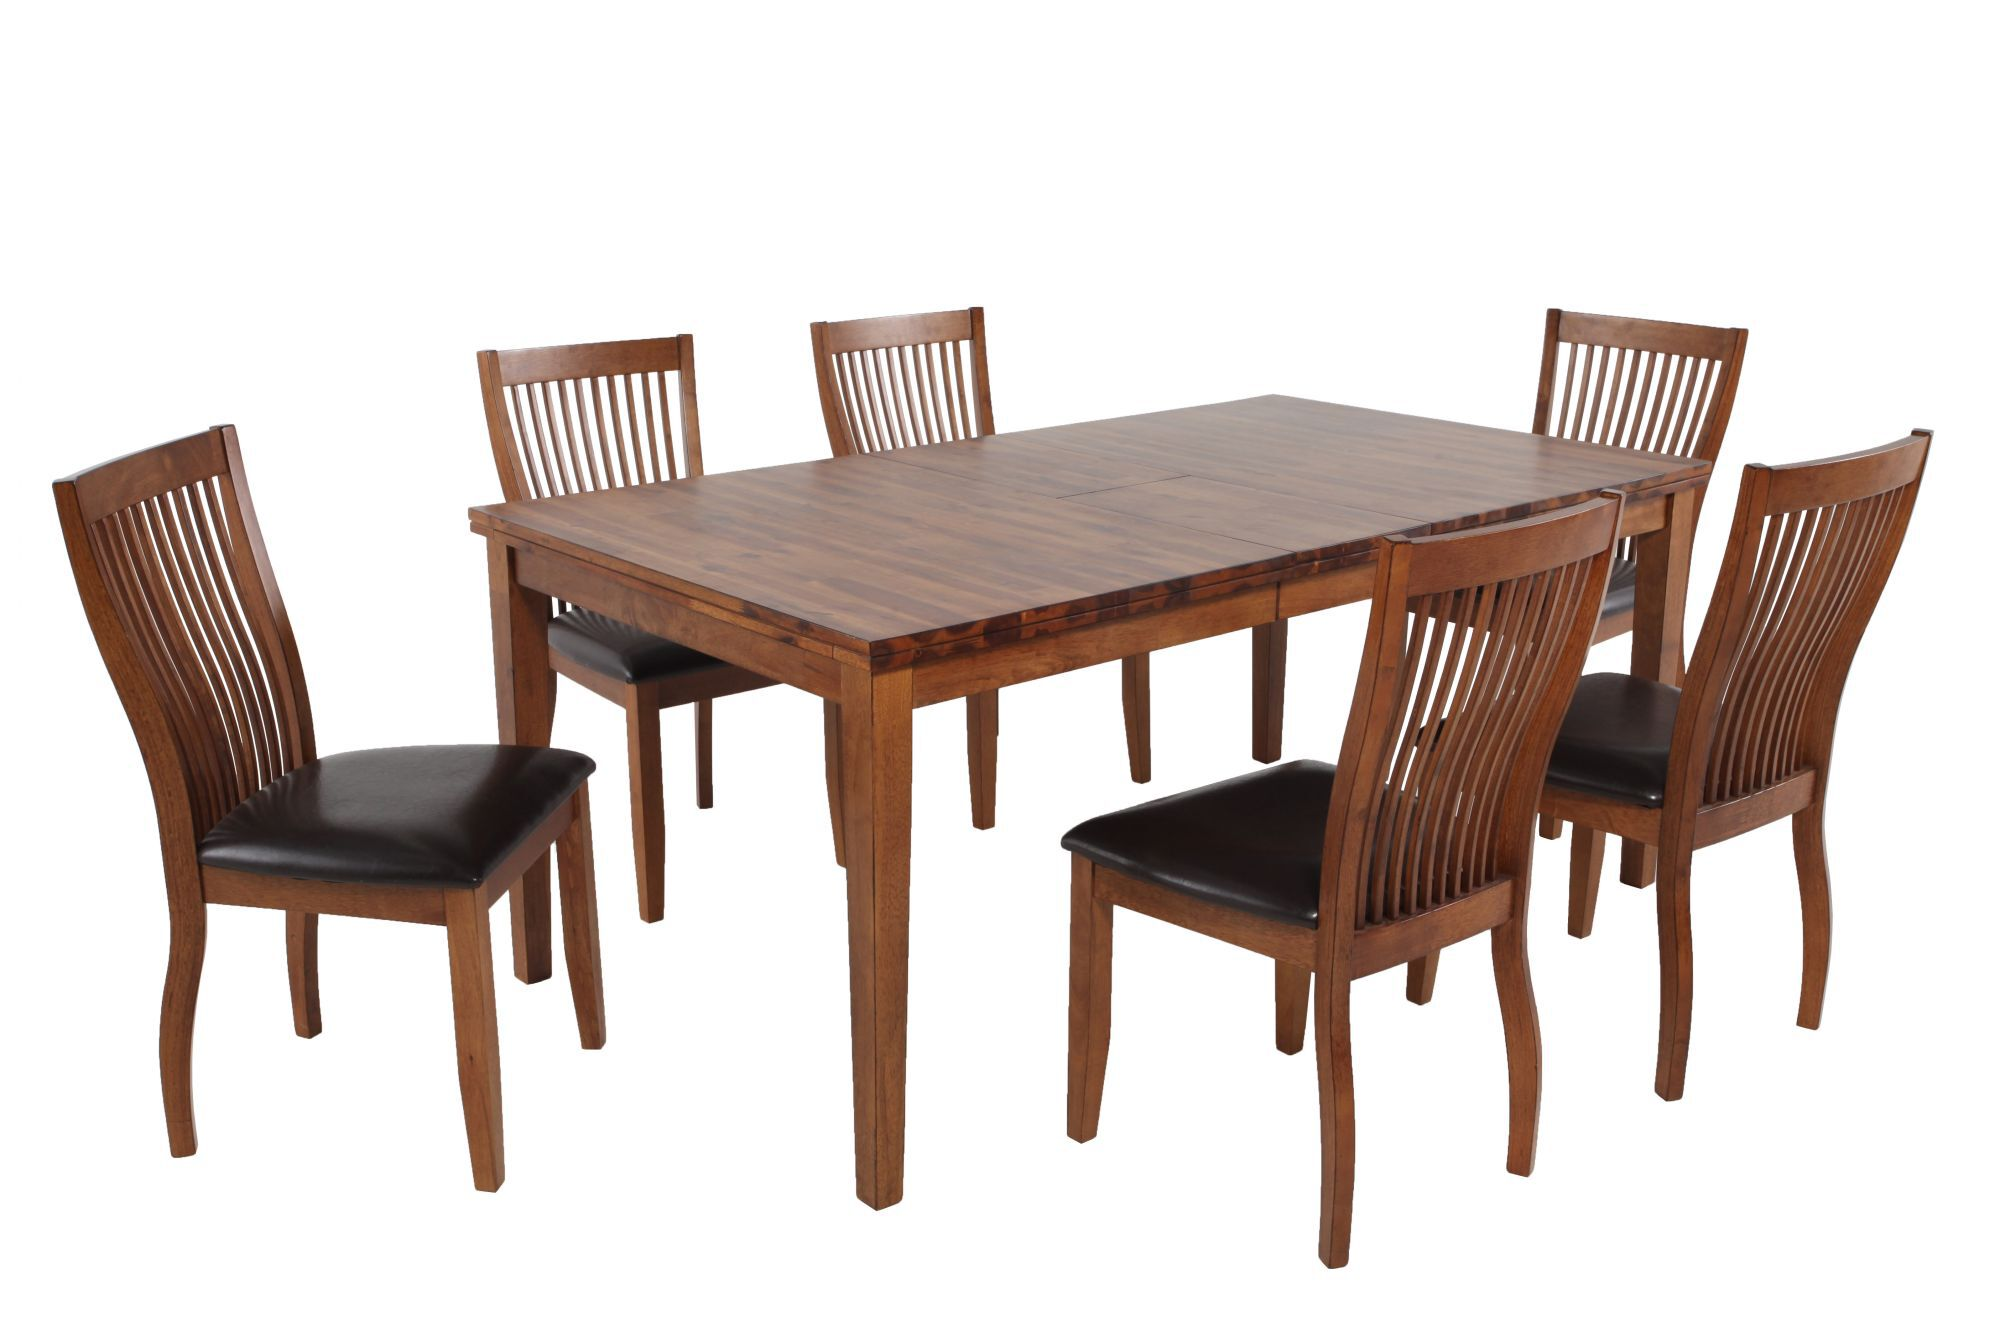 Traditional dining room furniture Modern Sevenpiece Traditional Dining Set In Brown Mathis Brothers Dining Room Sets Kitchen Furniture Mathis Brothers